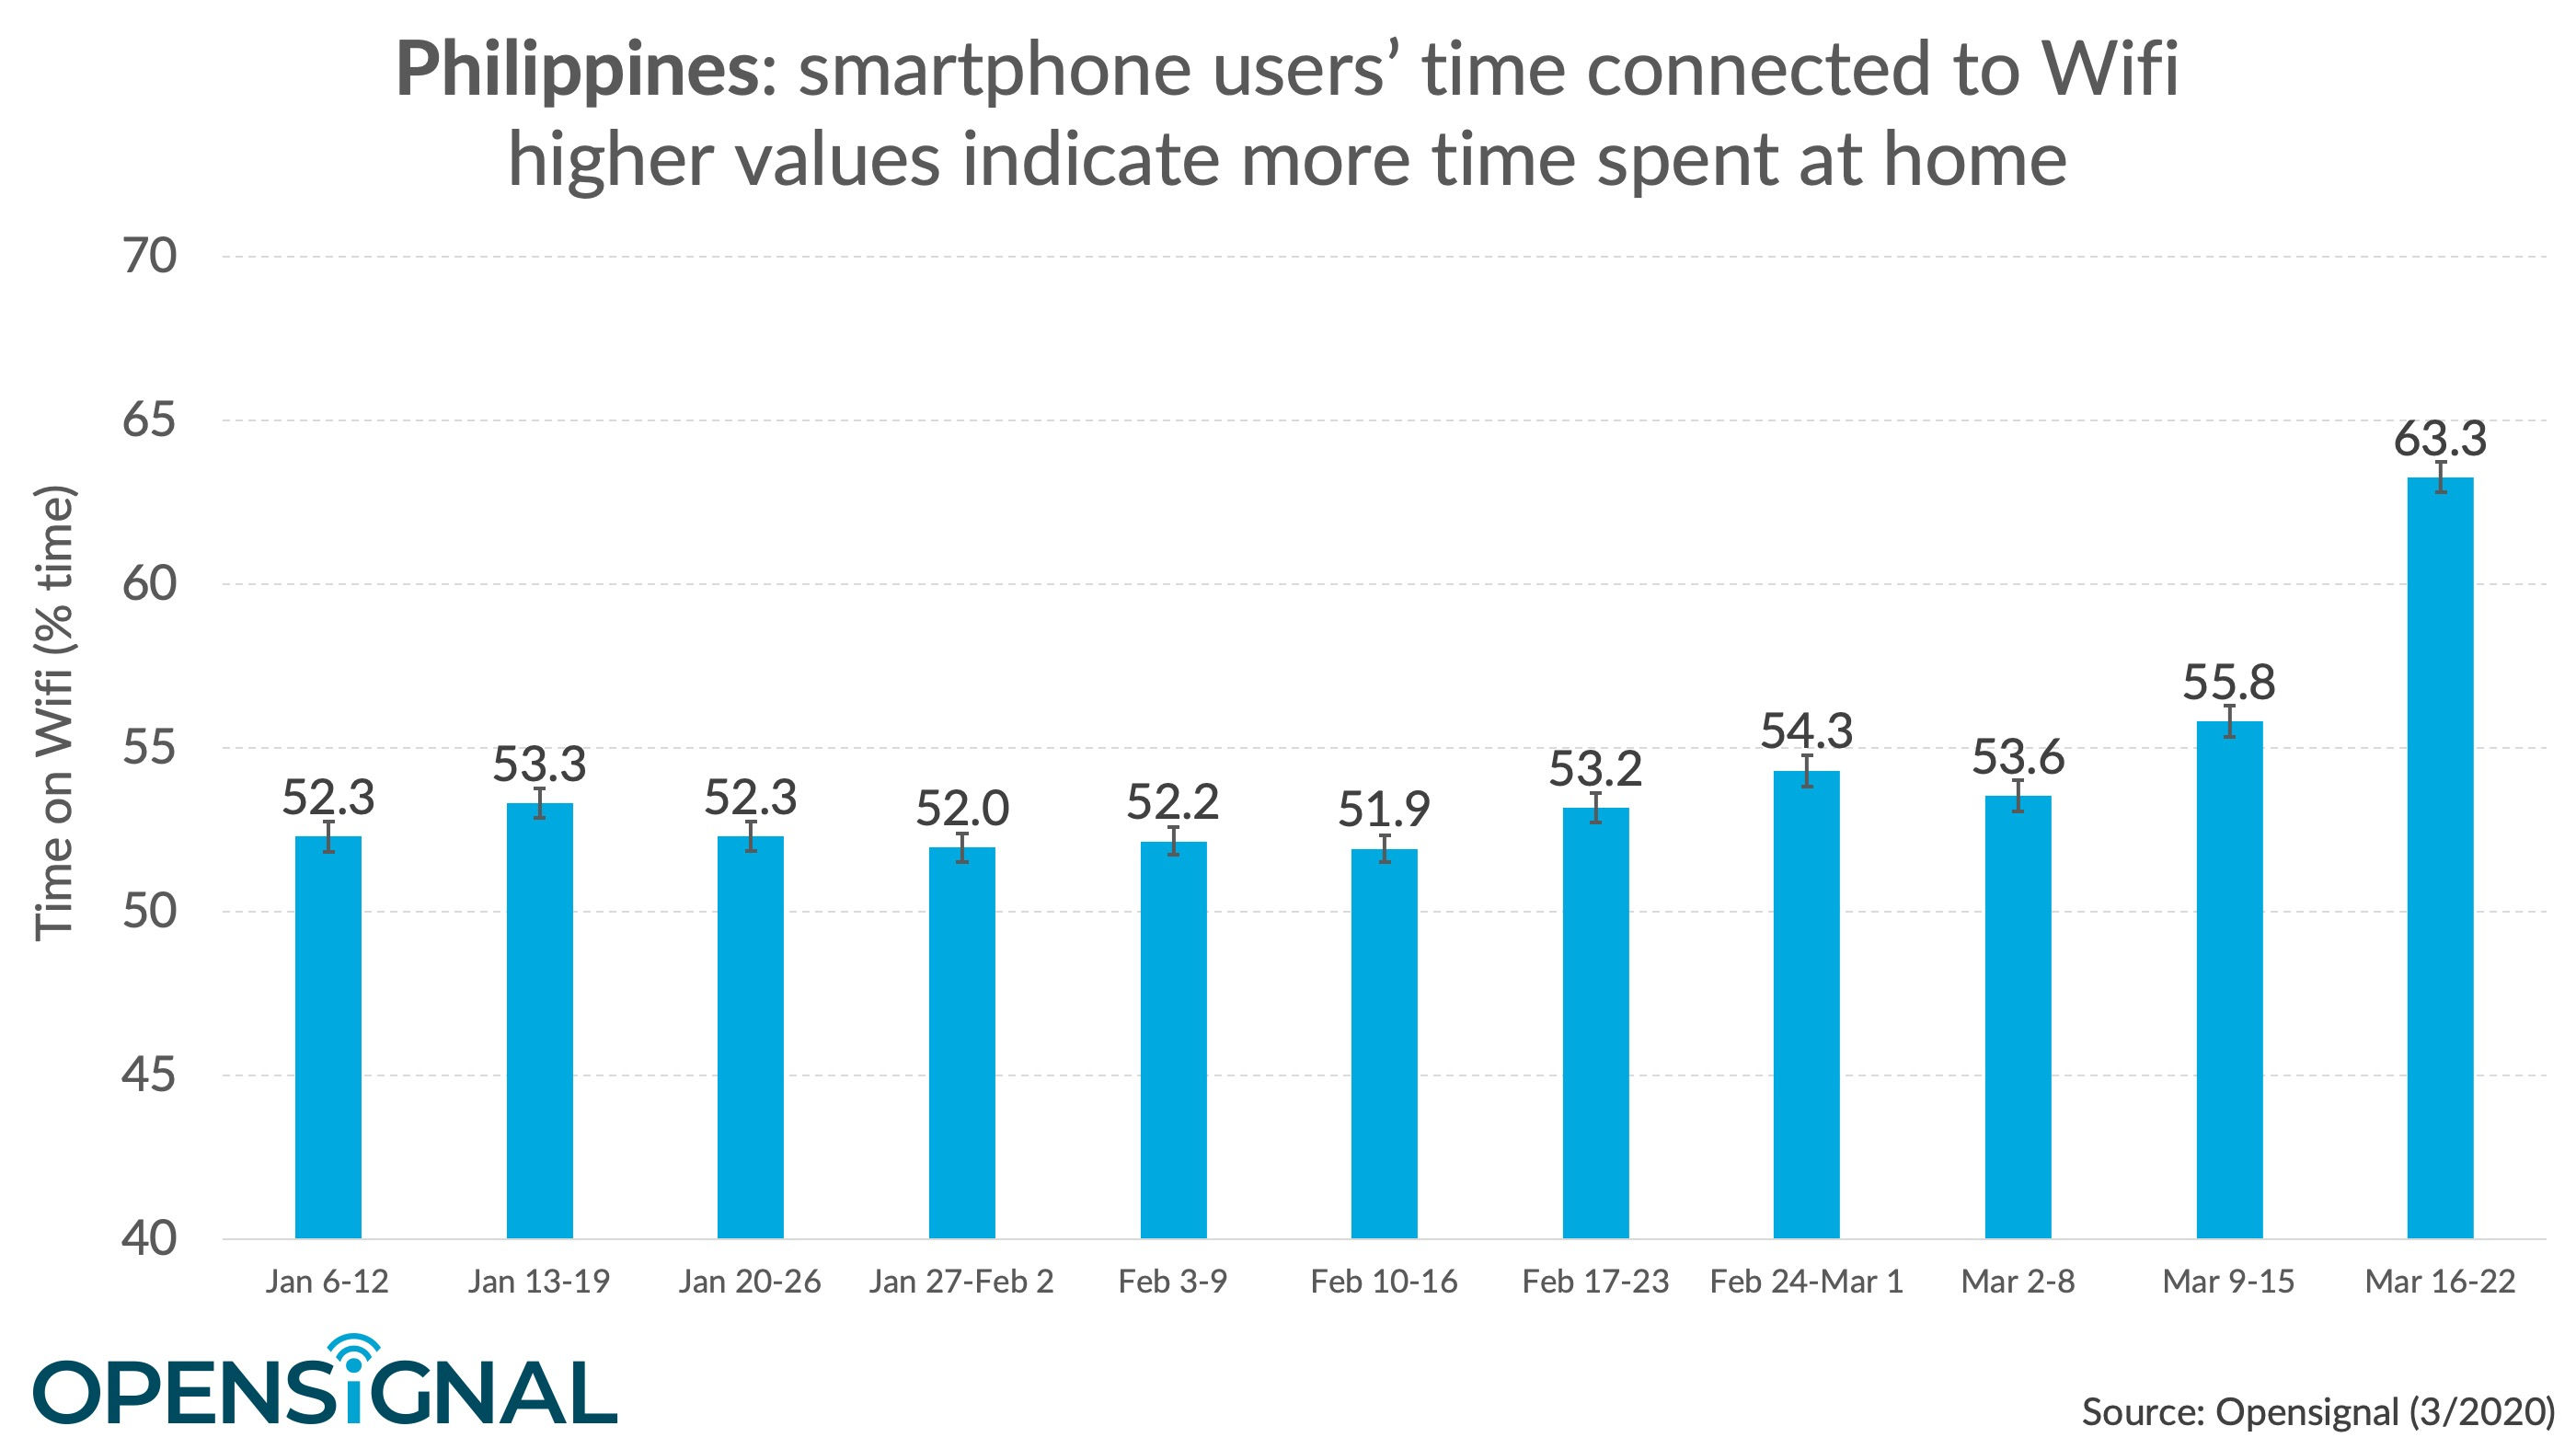 SMARTPHONES ON WI-FI. This table indicates Philippine smartphone uses' time spent connected to Wi-Fi on given weeks. Image from OpenSignal